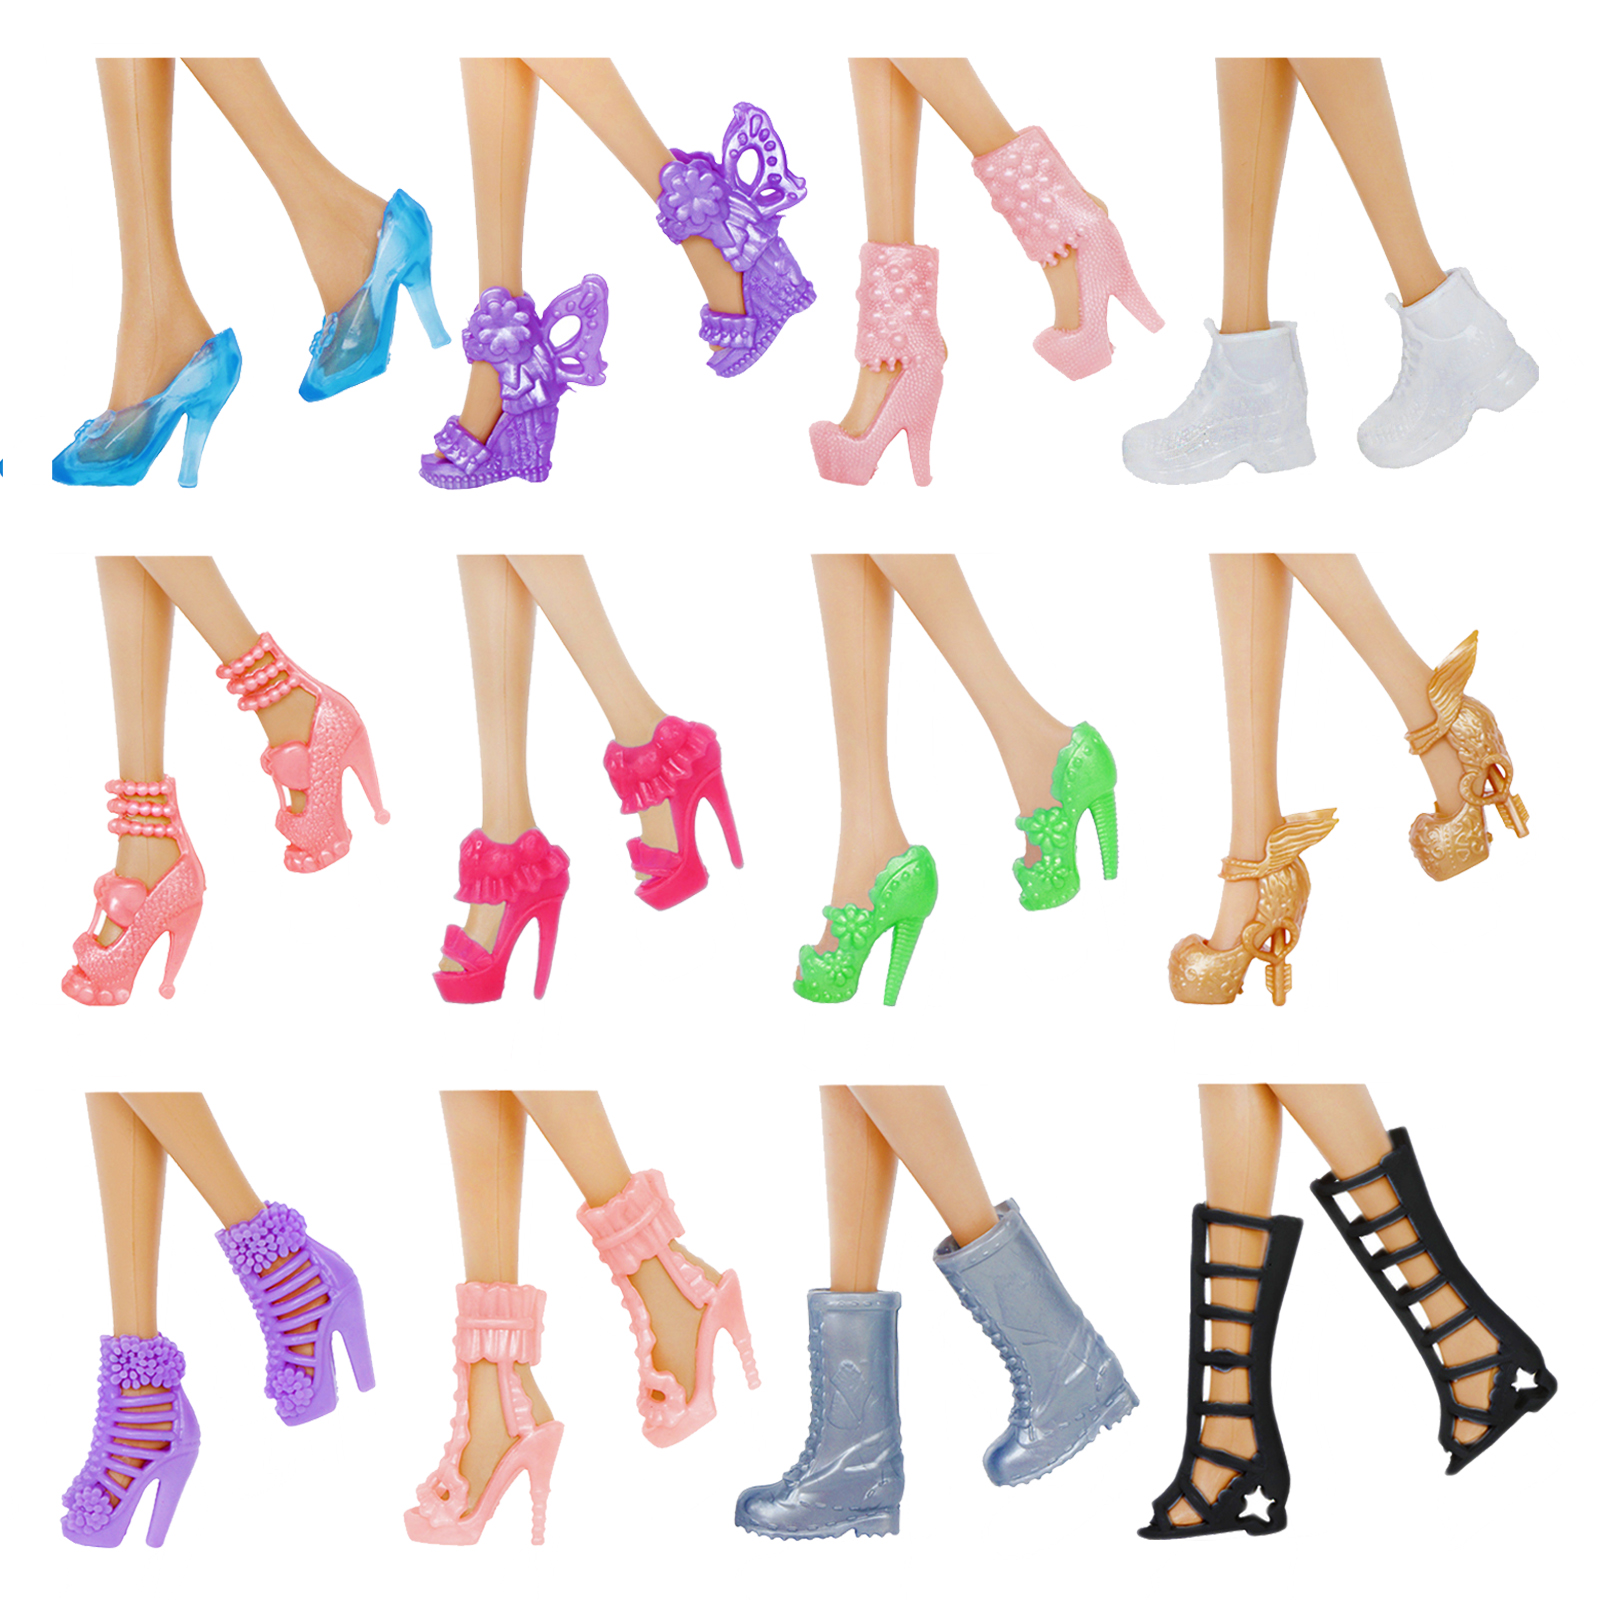 12 Pairs//Set Dolls Fashion Shoes High Heel Shoes Boots for  Doll Gift  BHUS